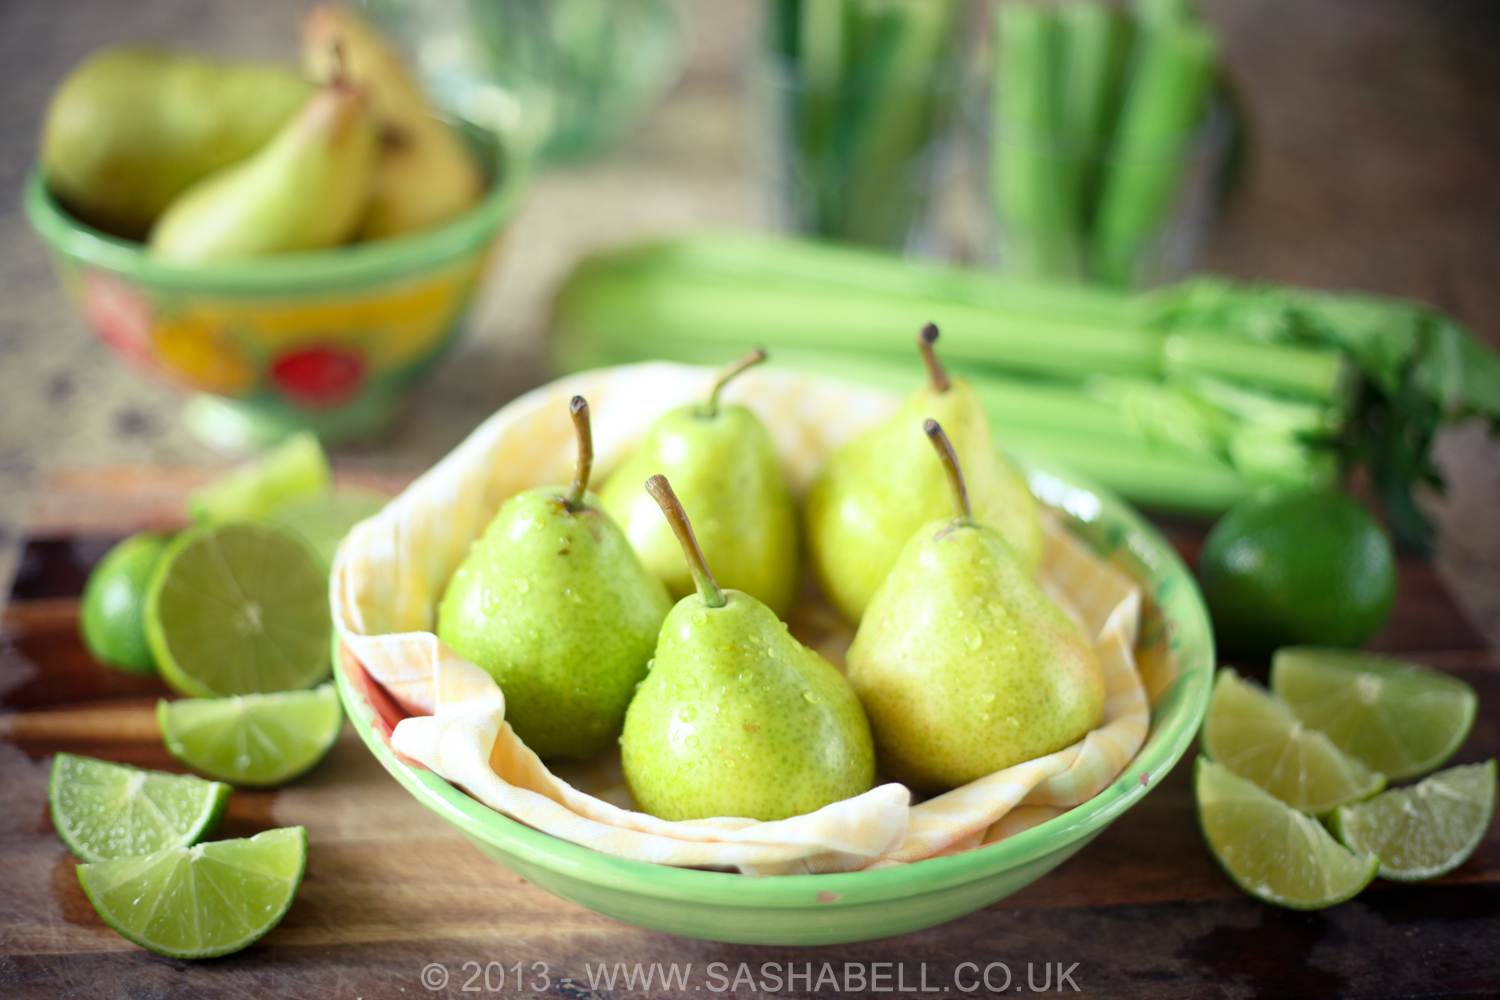 Green Pears and Limes